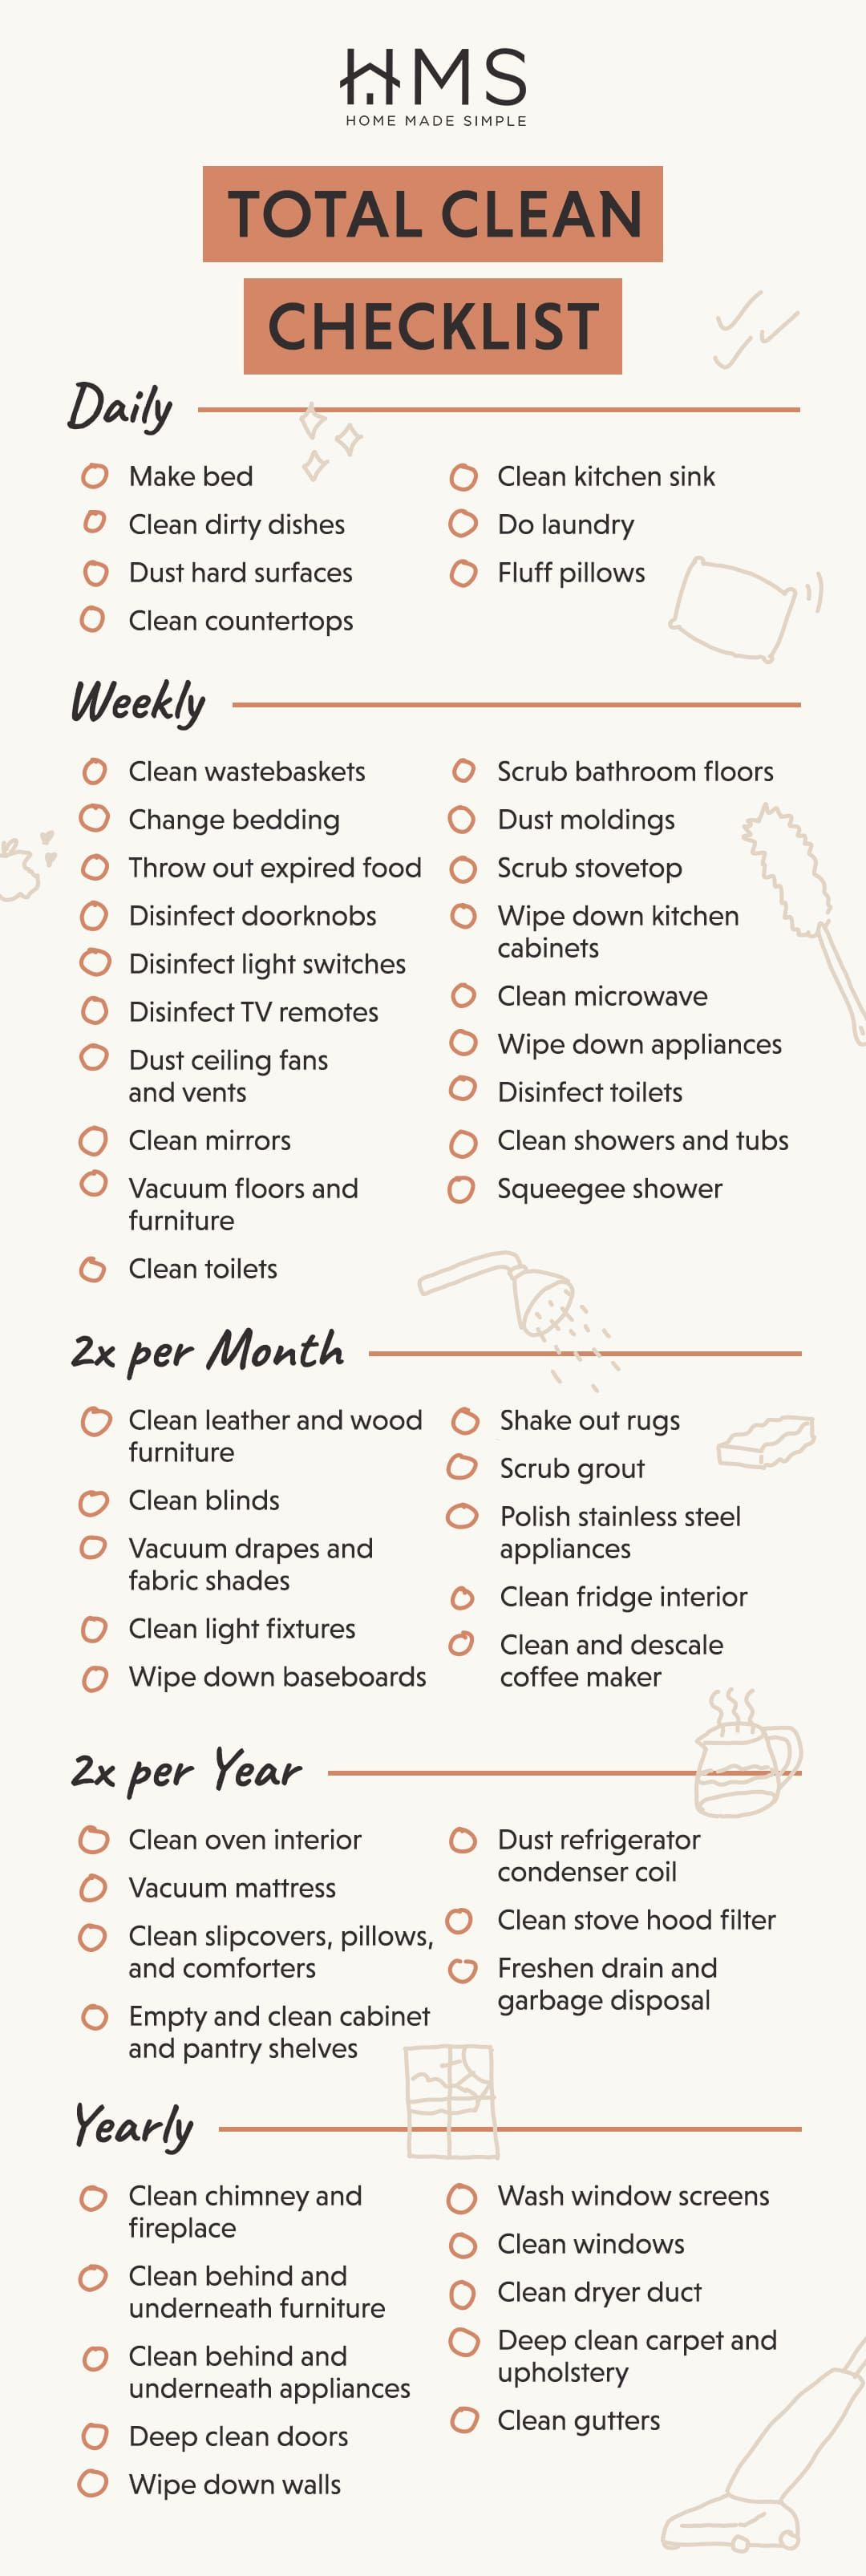 Your Whole House Cleaning Checklist